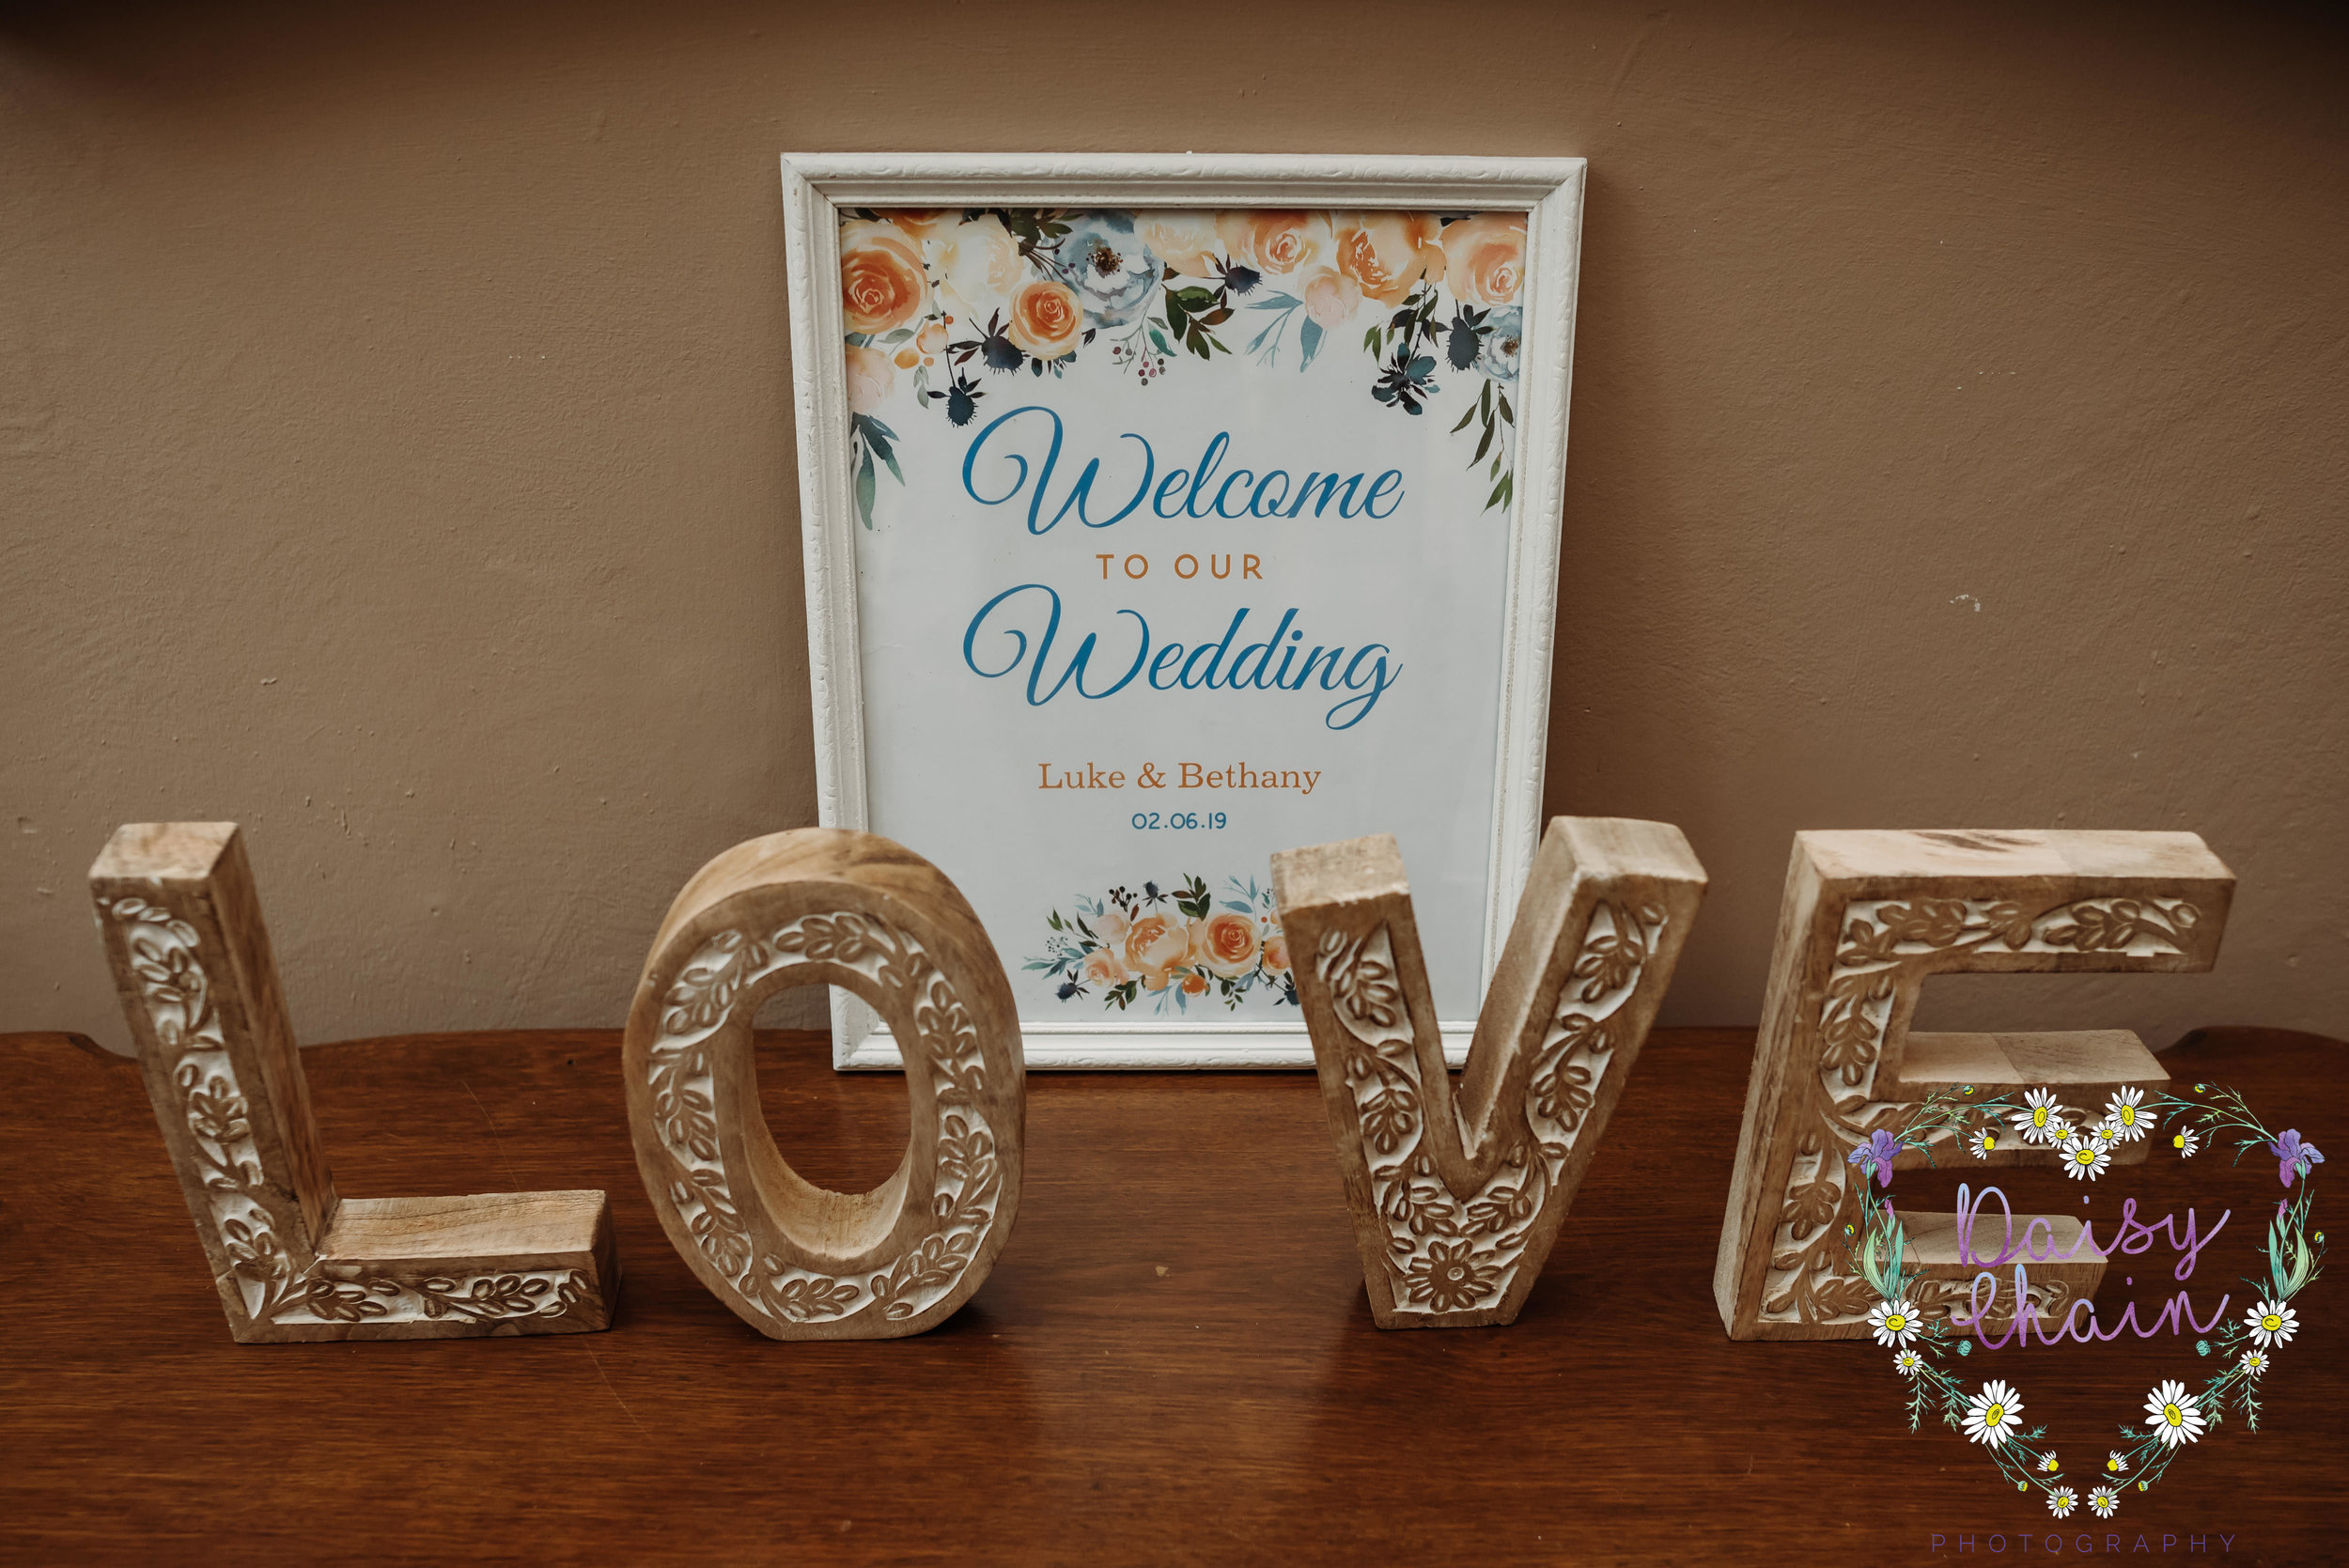 Wedding letters - love